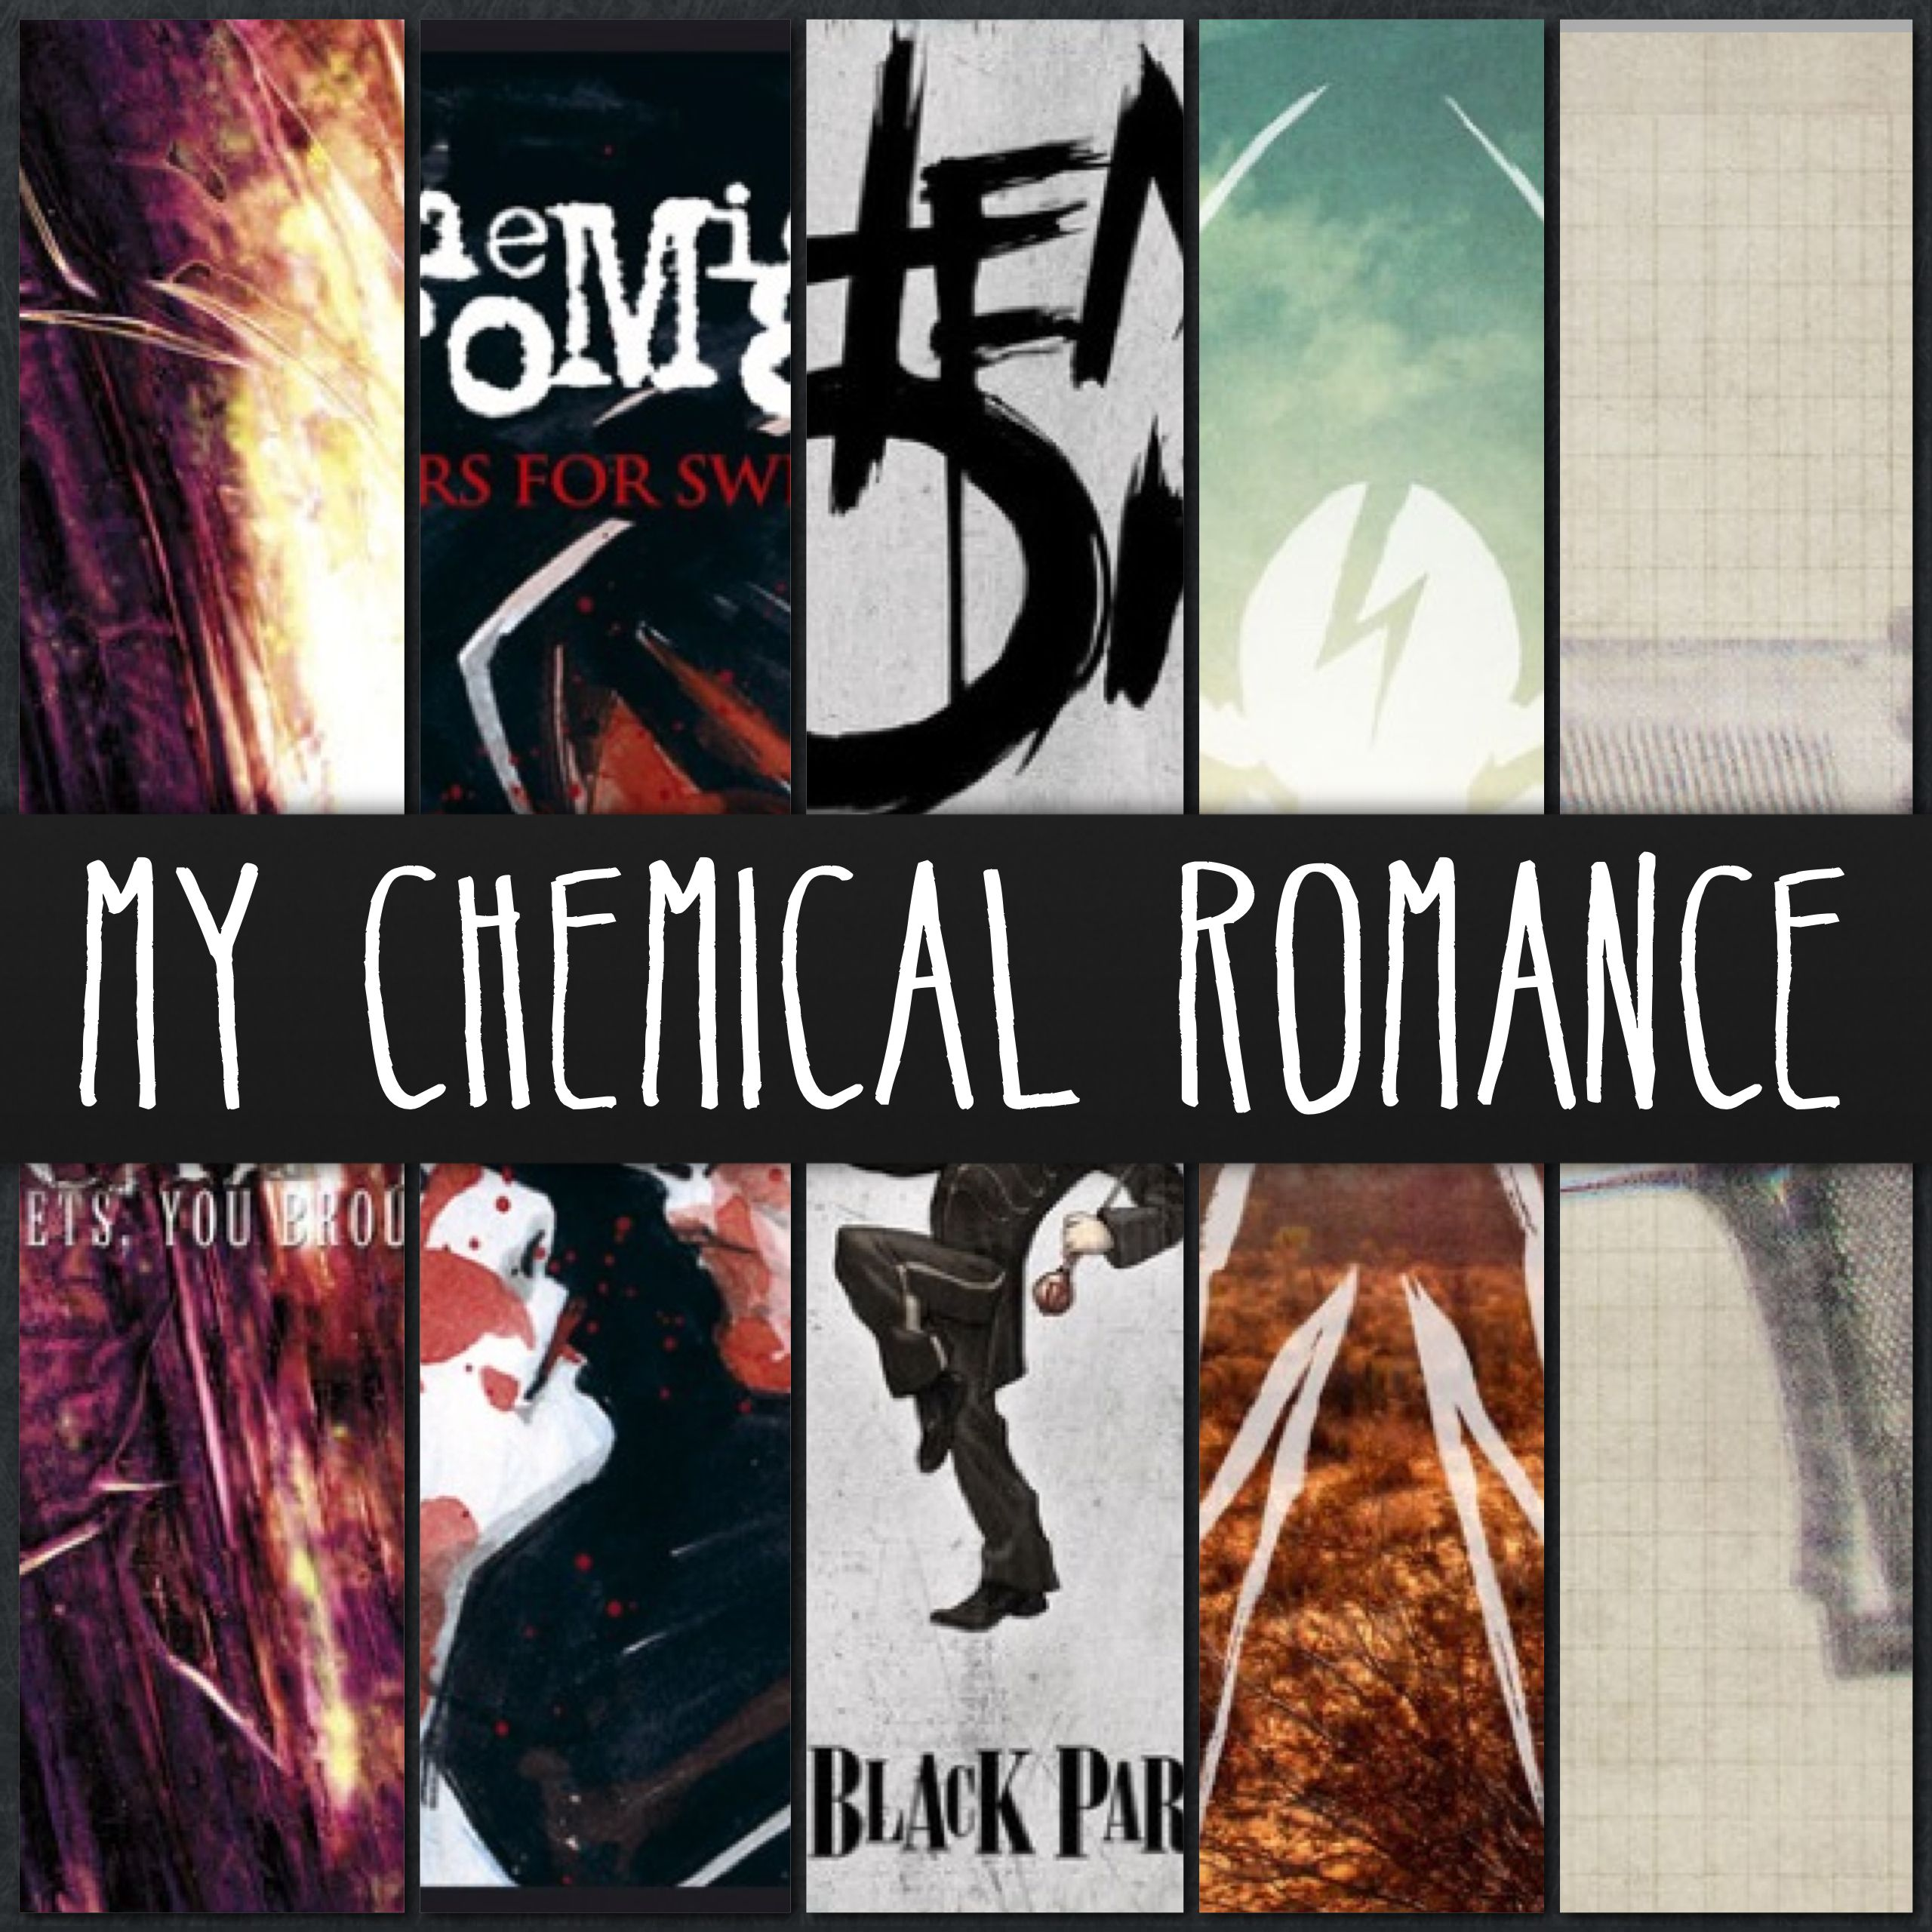 Pin by Kelcy Koster on MCR